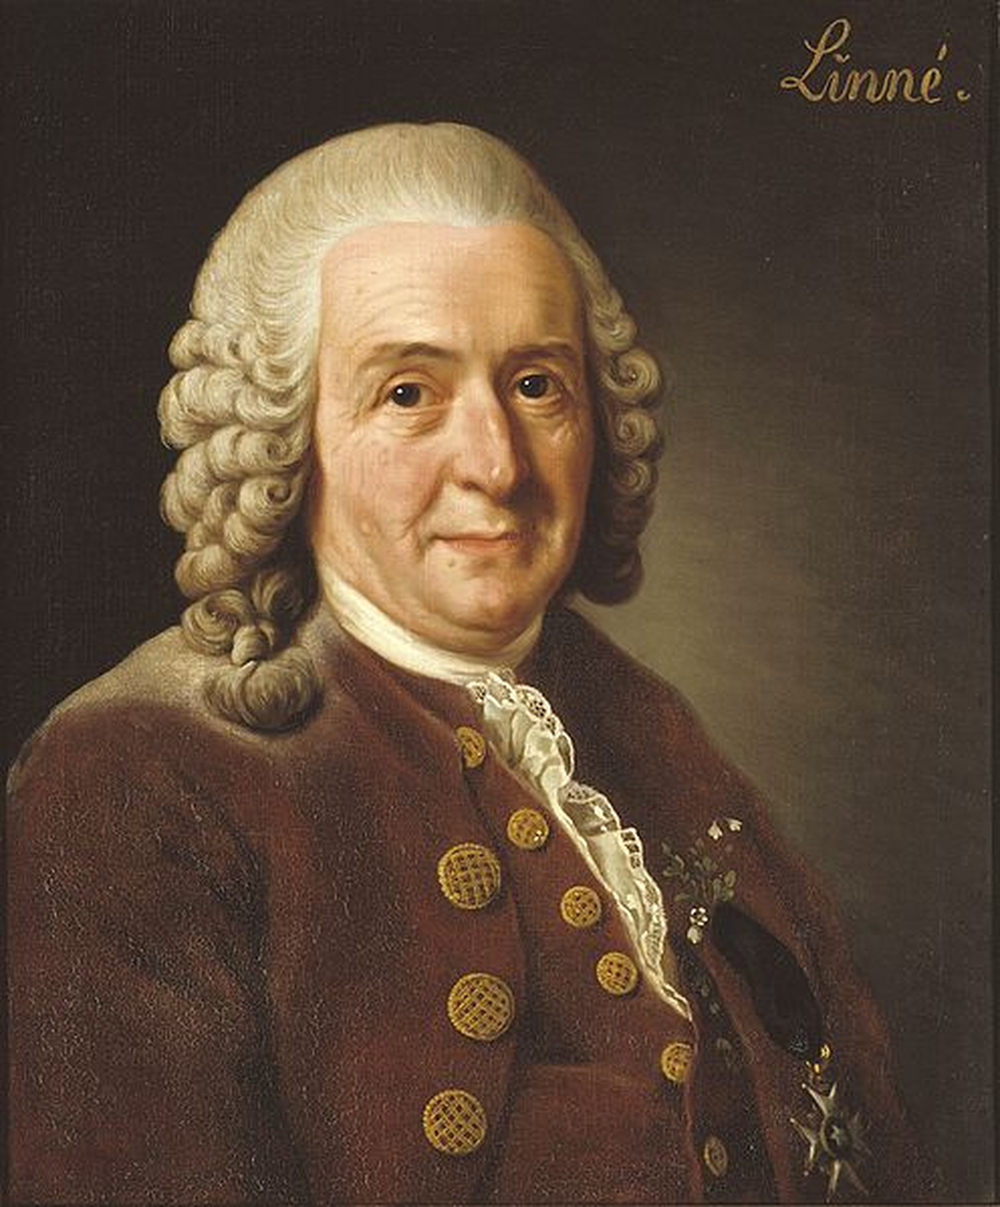 According to the paper, Carl von Linné, the Swedish botanist and father of taxonomy, would be a computational biologist today. Image credit: Nationalmuseum Stockholm.